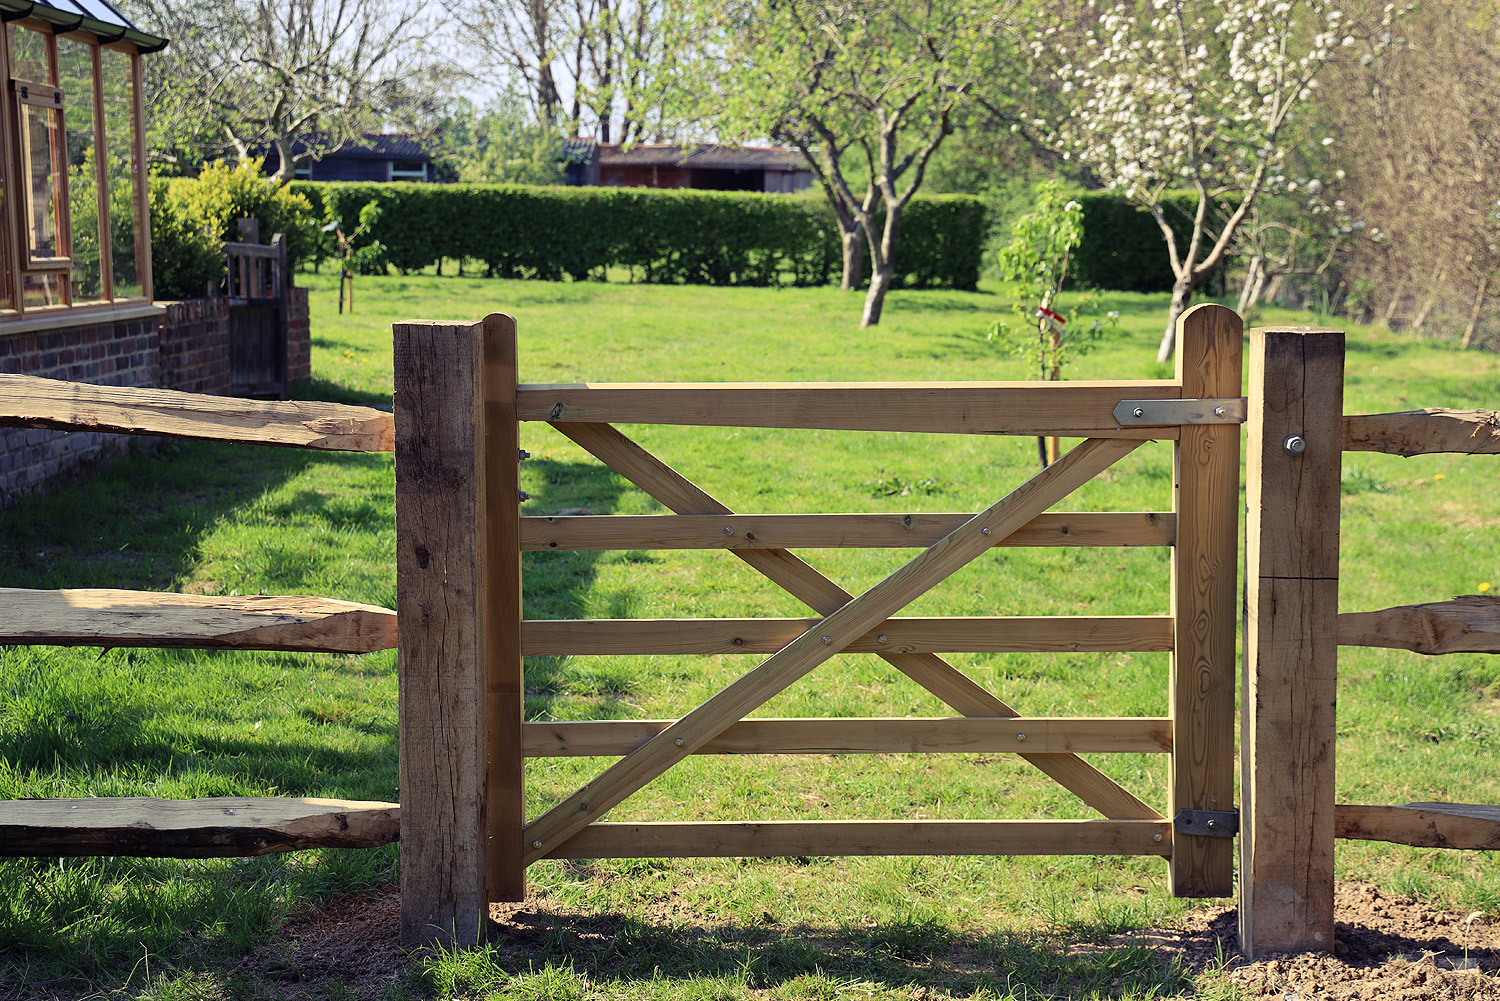 New gate & fencing